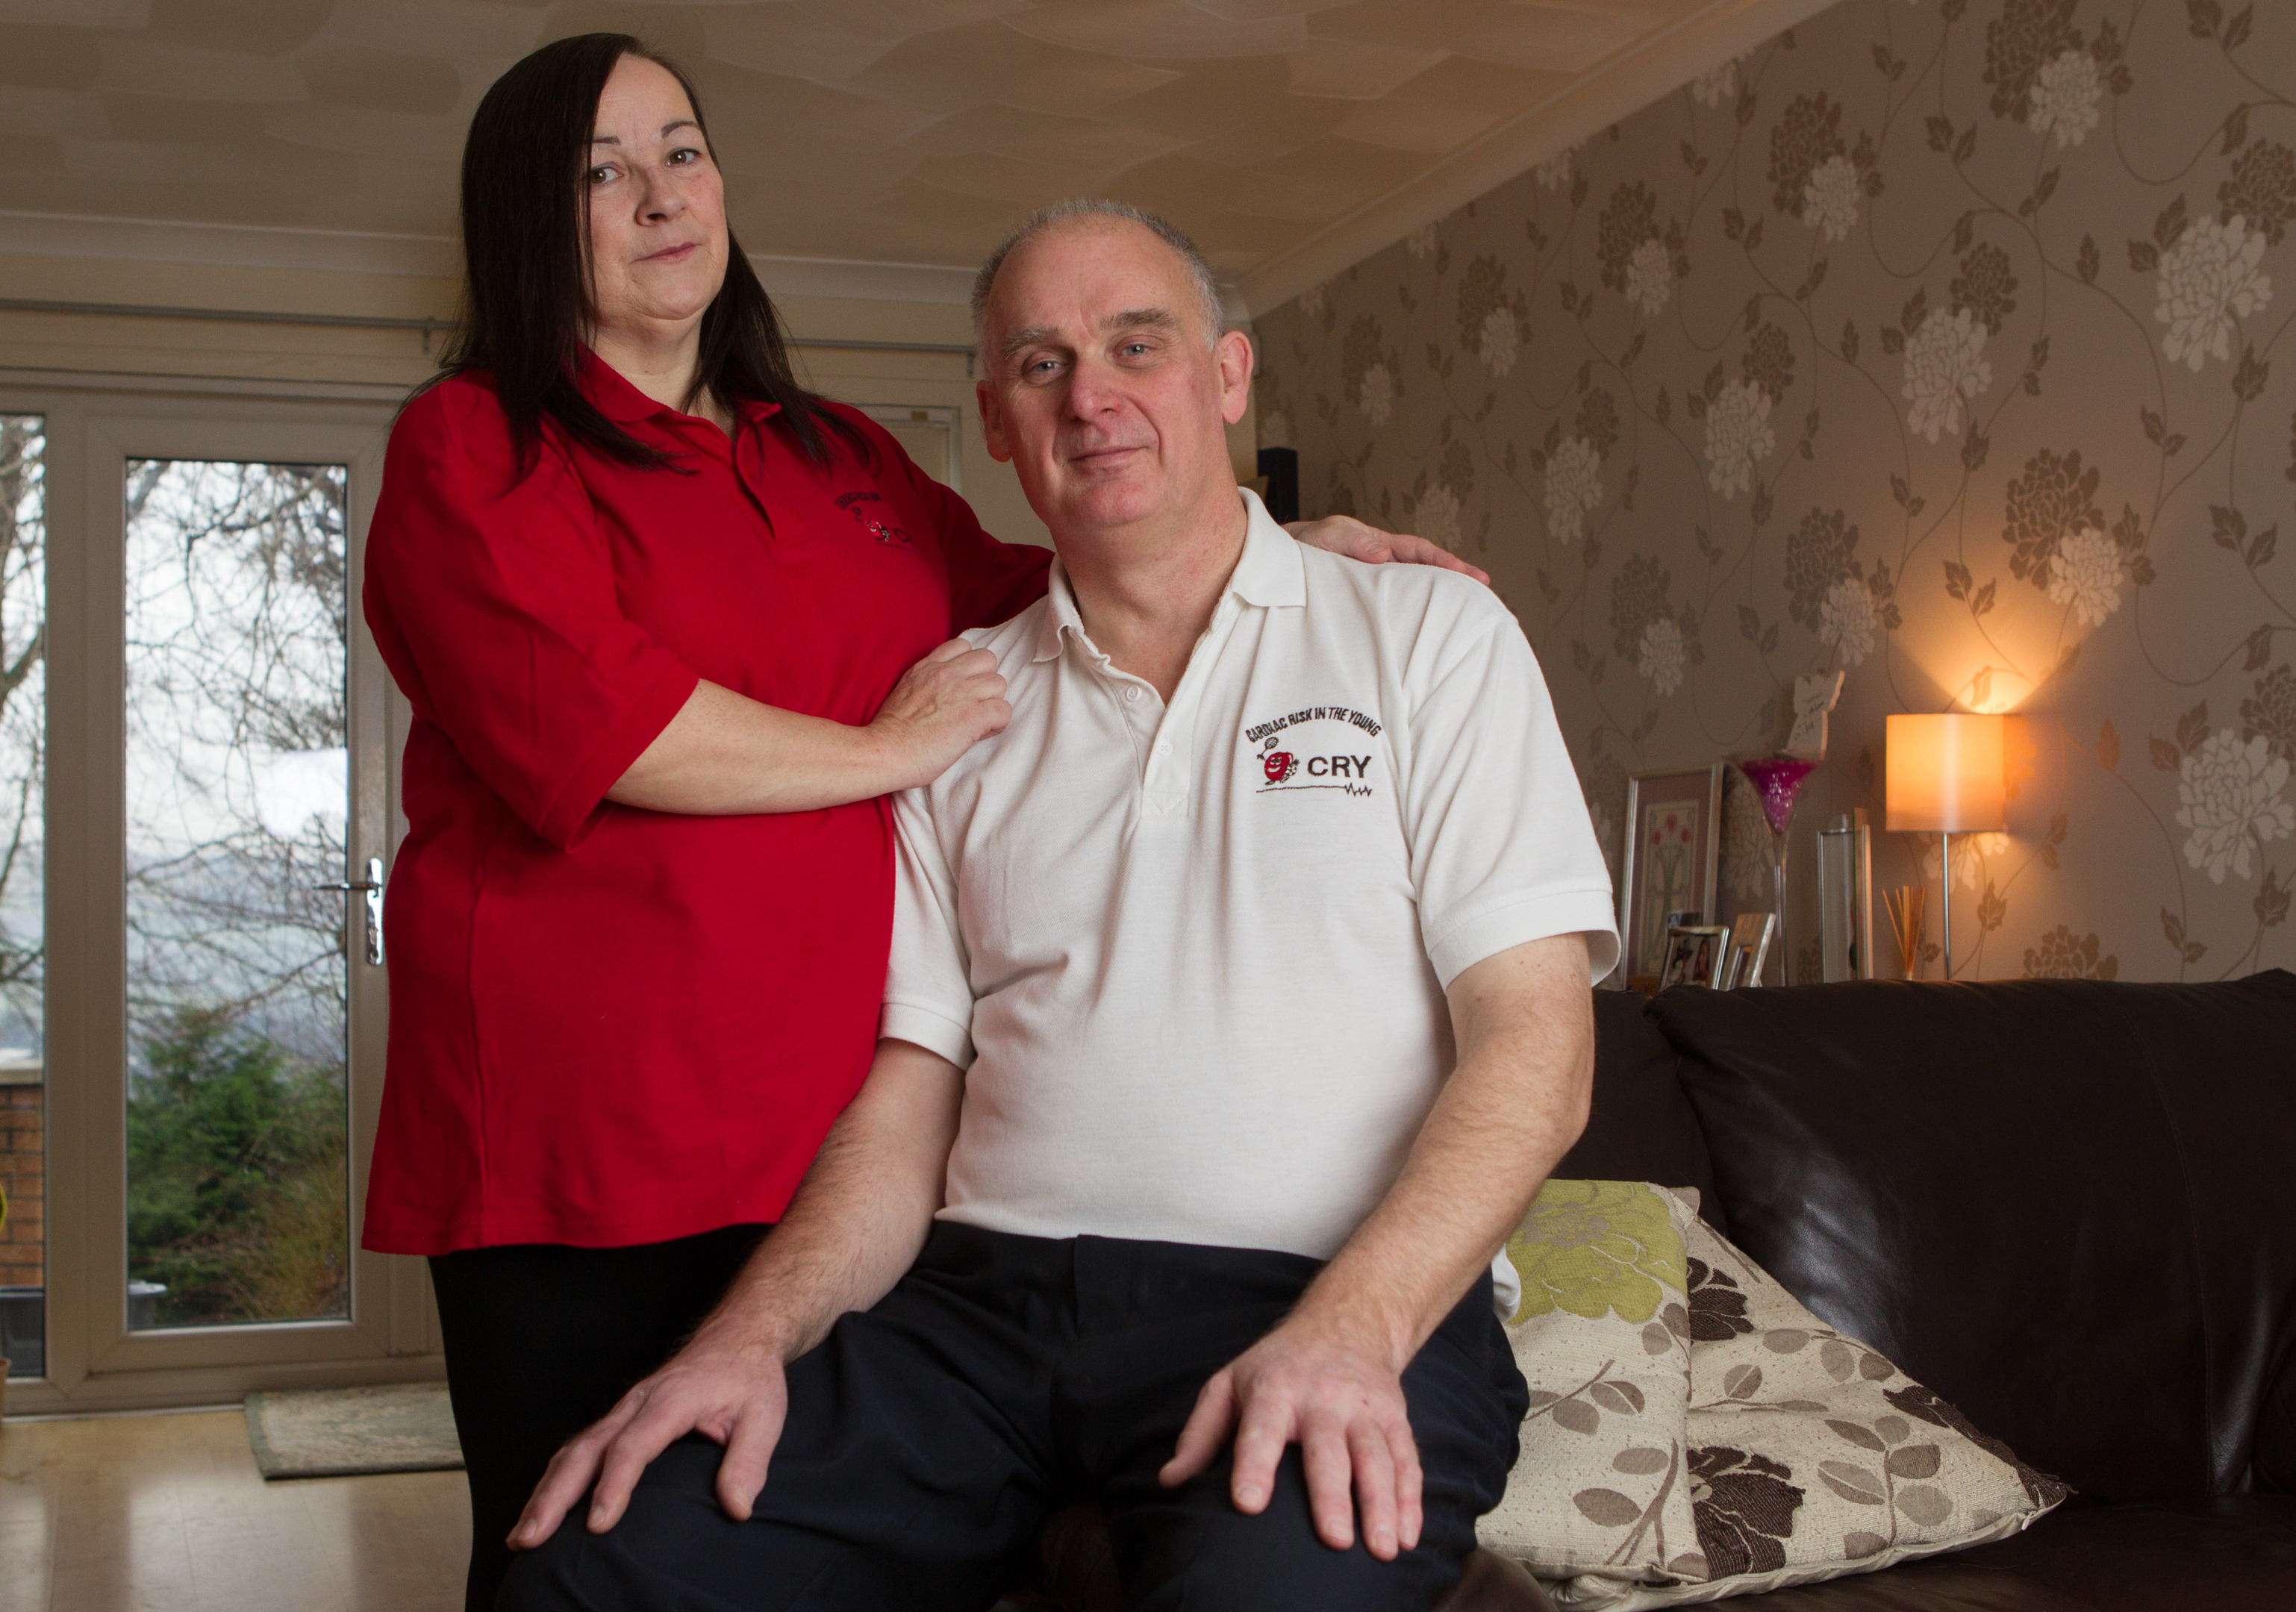 Irene and Ian Broughton lost their daughter Steffani suddenly in 2007 when she was just 17 due to cardiac problems (Chris Austin / DC Thomson)